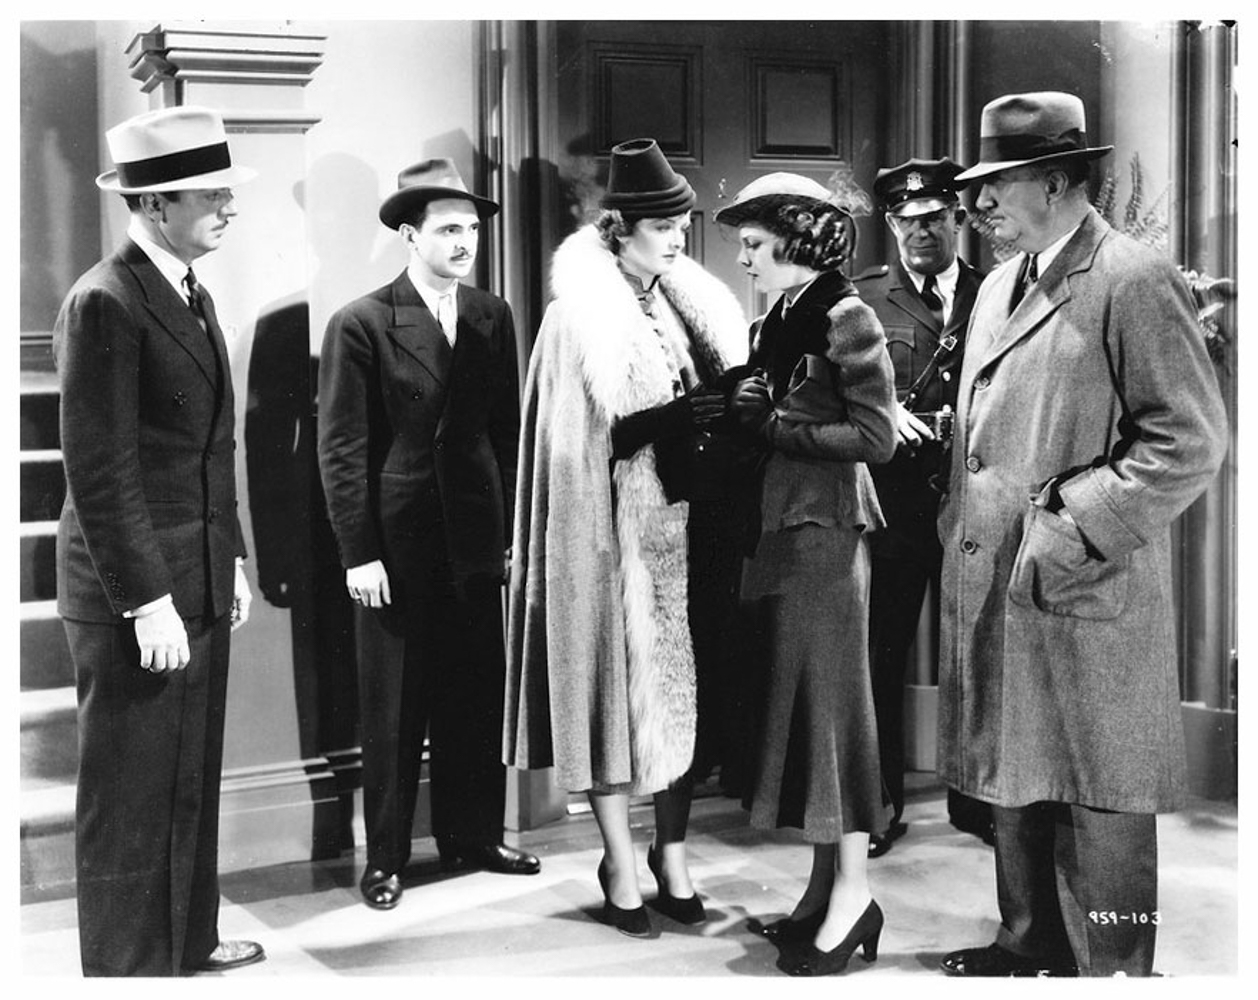 after the thin man 1936 scene still photo 959-103